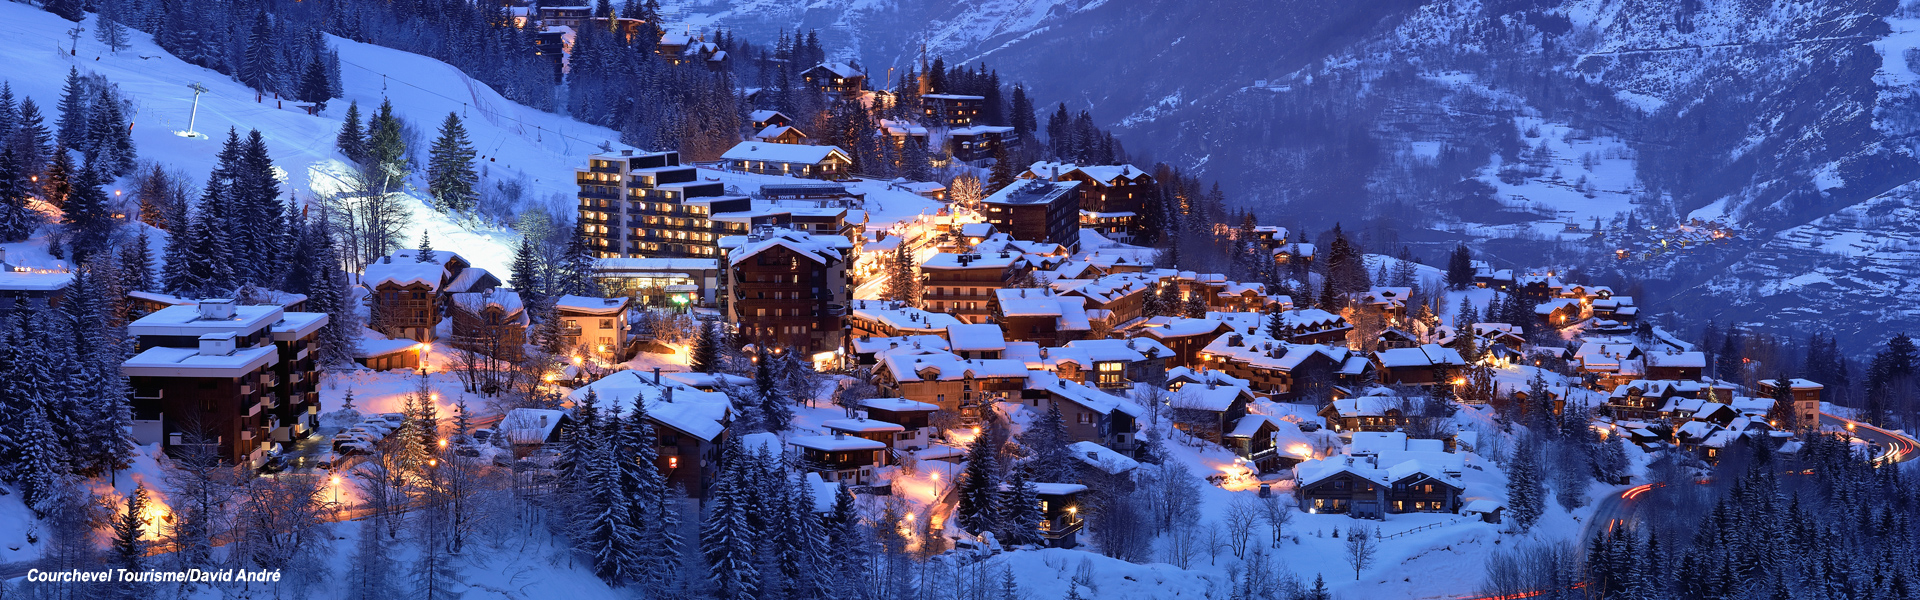 Courchevel Village